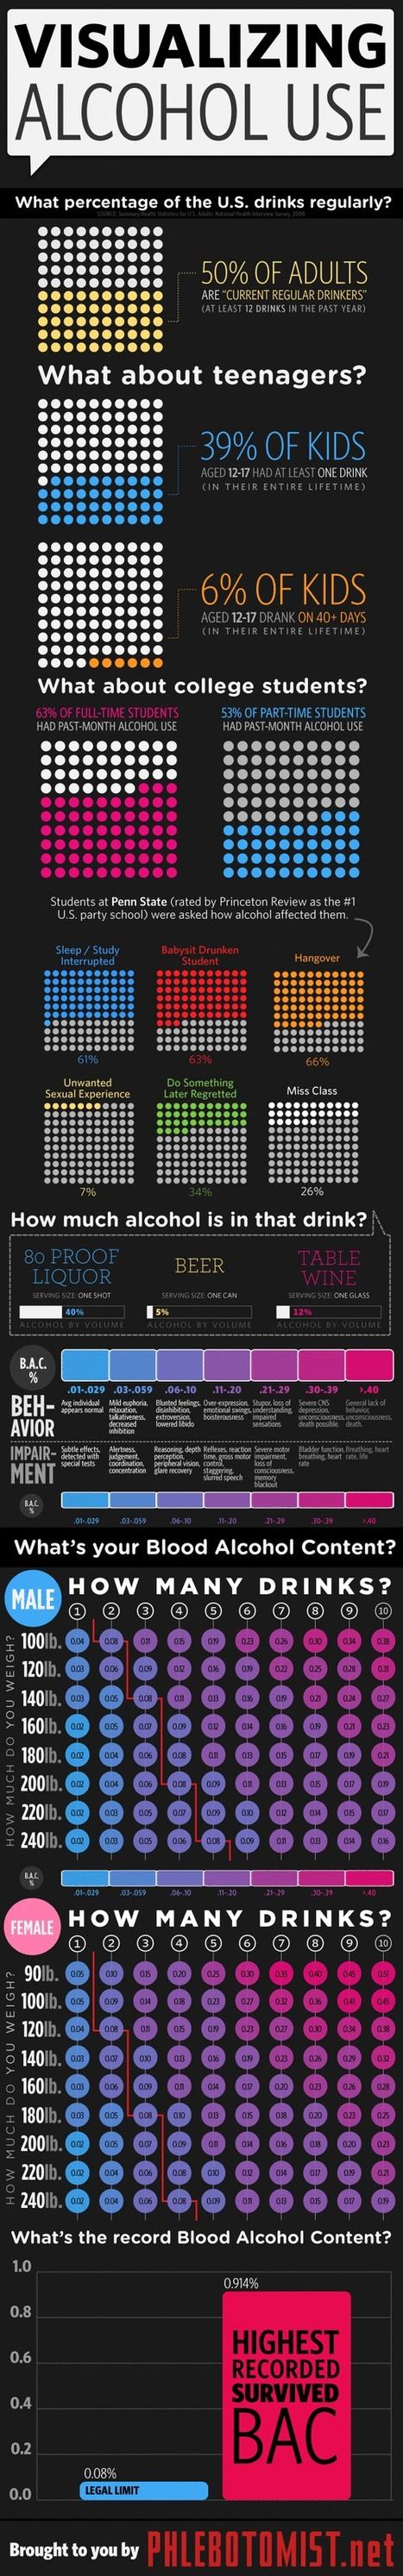 Alcohol use in America [infographic] - Holy Kaw! | Alcohol and Other Drug Infographics | Scoop.it